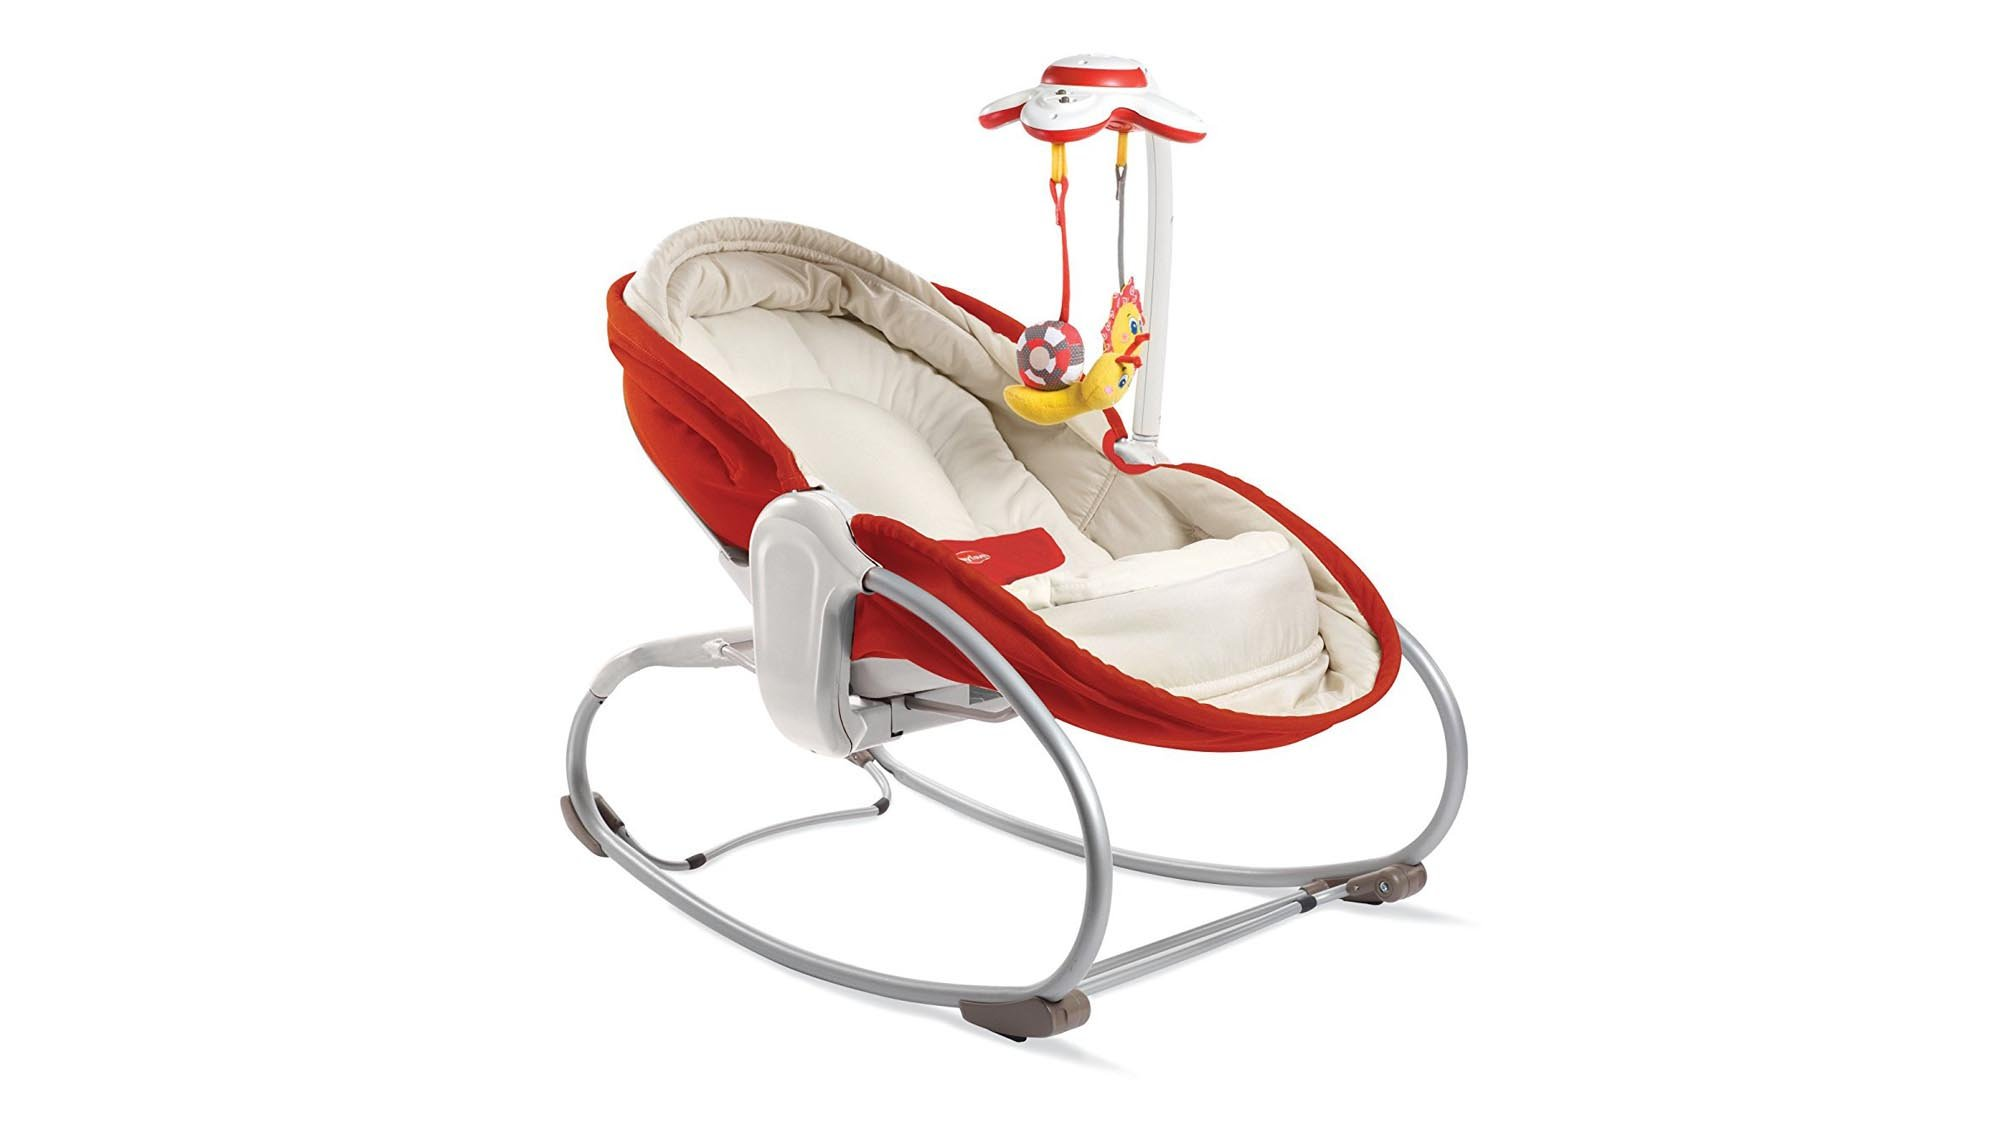 Remarkable Best Baby Bouncer The Best Baby Bouncers Baby Rockers And Machost Co Dining Chair Design Ideas Machostcouk